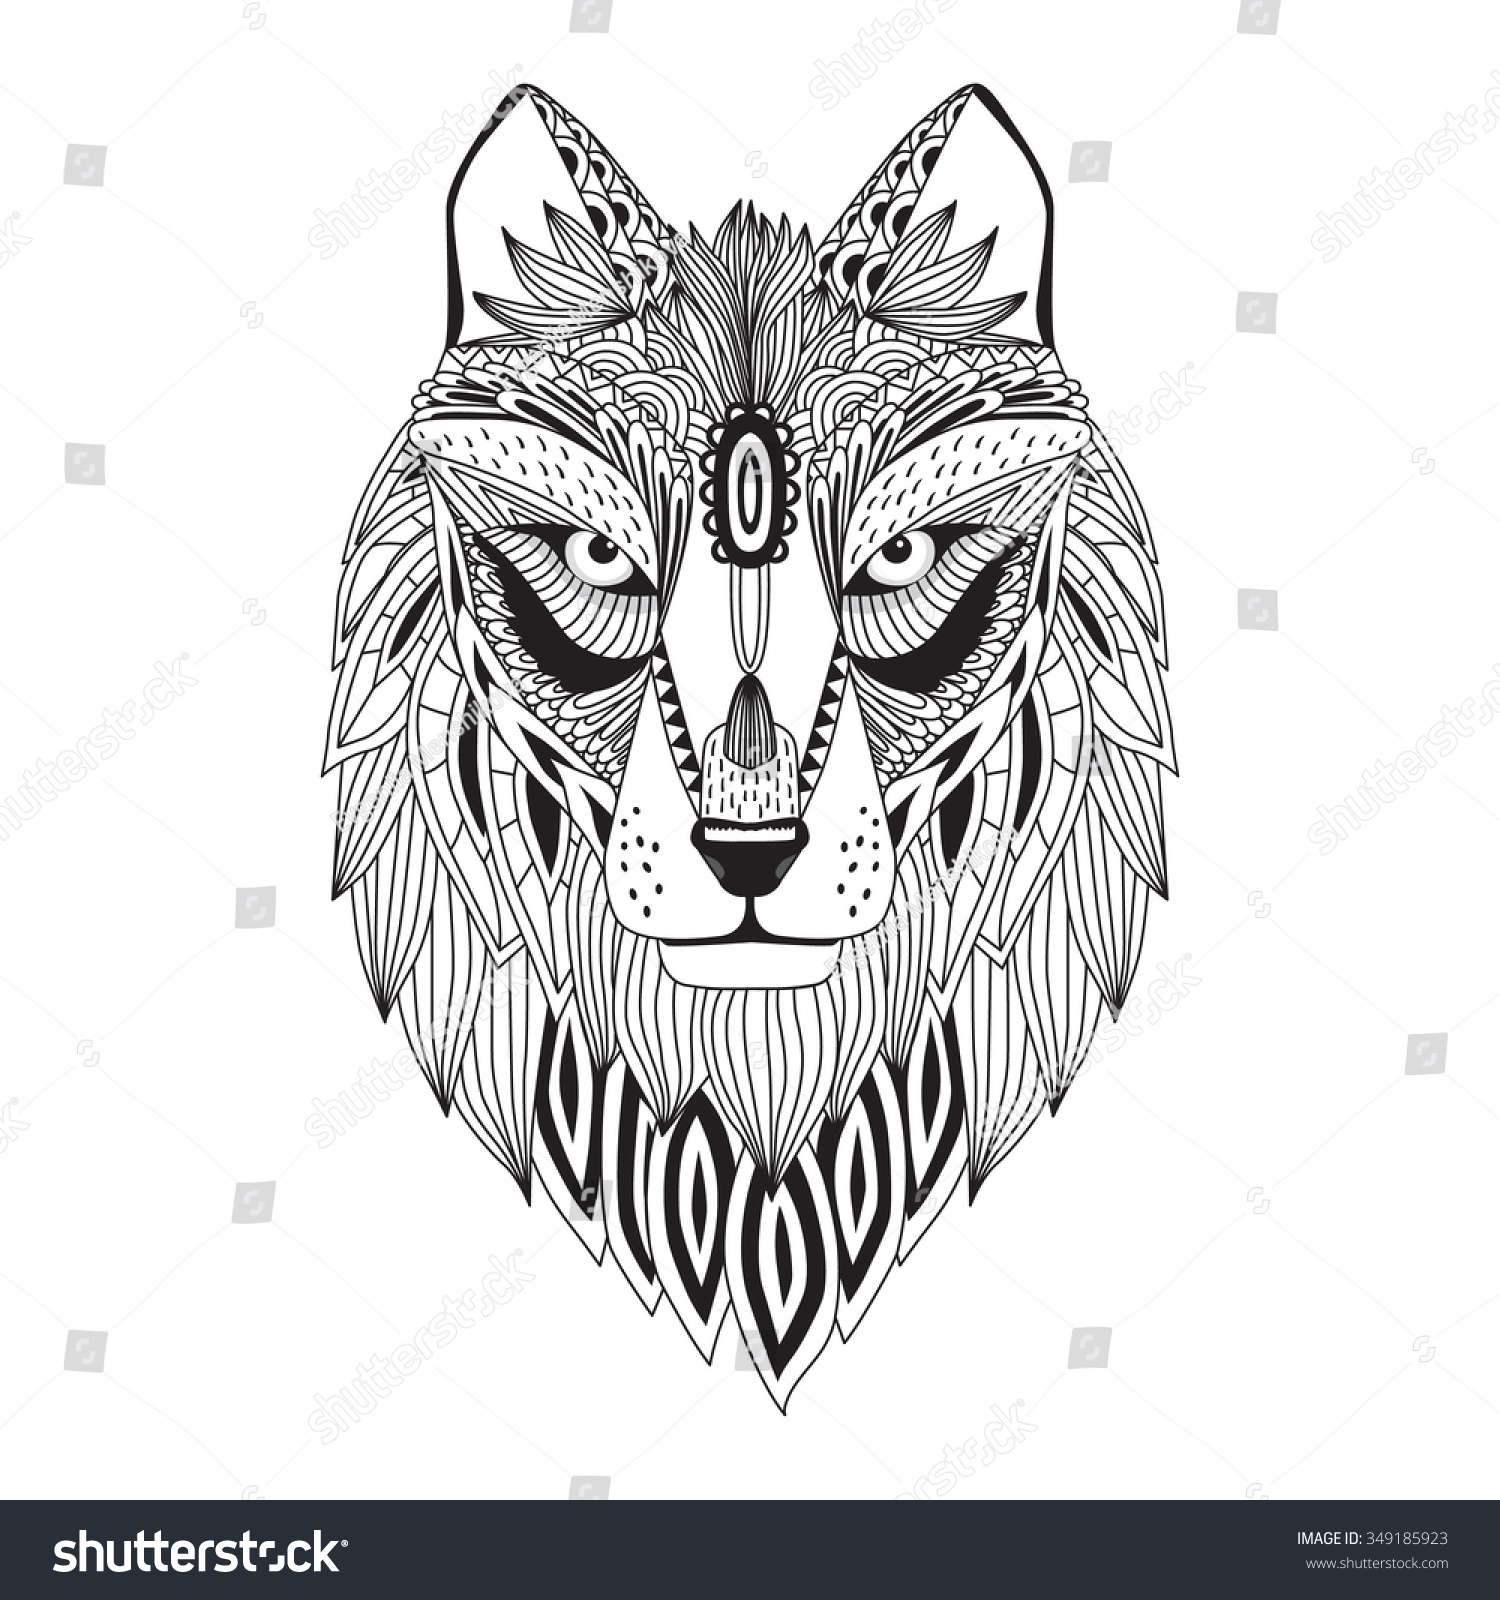 Coloring pages for adults wolf - Patterned Head Of The Wolf Vector Illustration In Zentangle Style Sketch For Adult Antistress